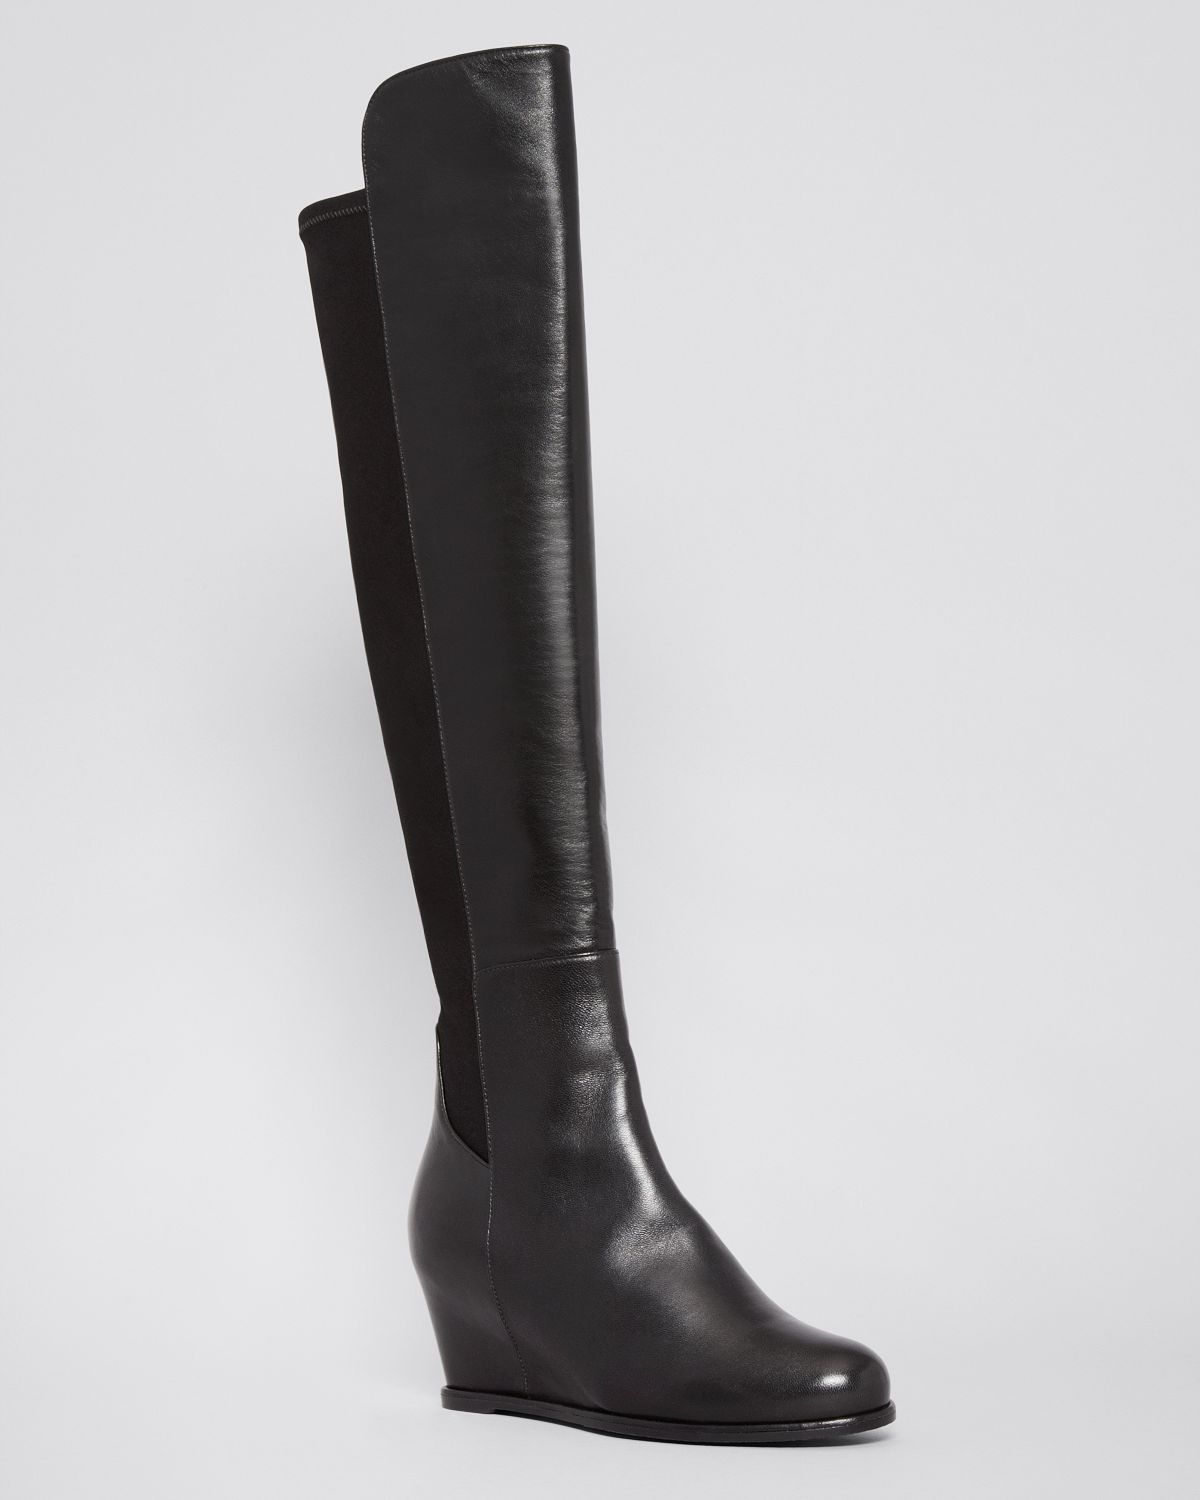 Stuart weitzman Over The Knee Wedge Boots - Semi in Black | Lyst